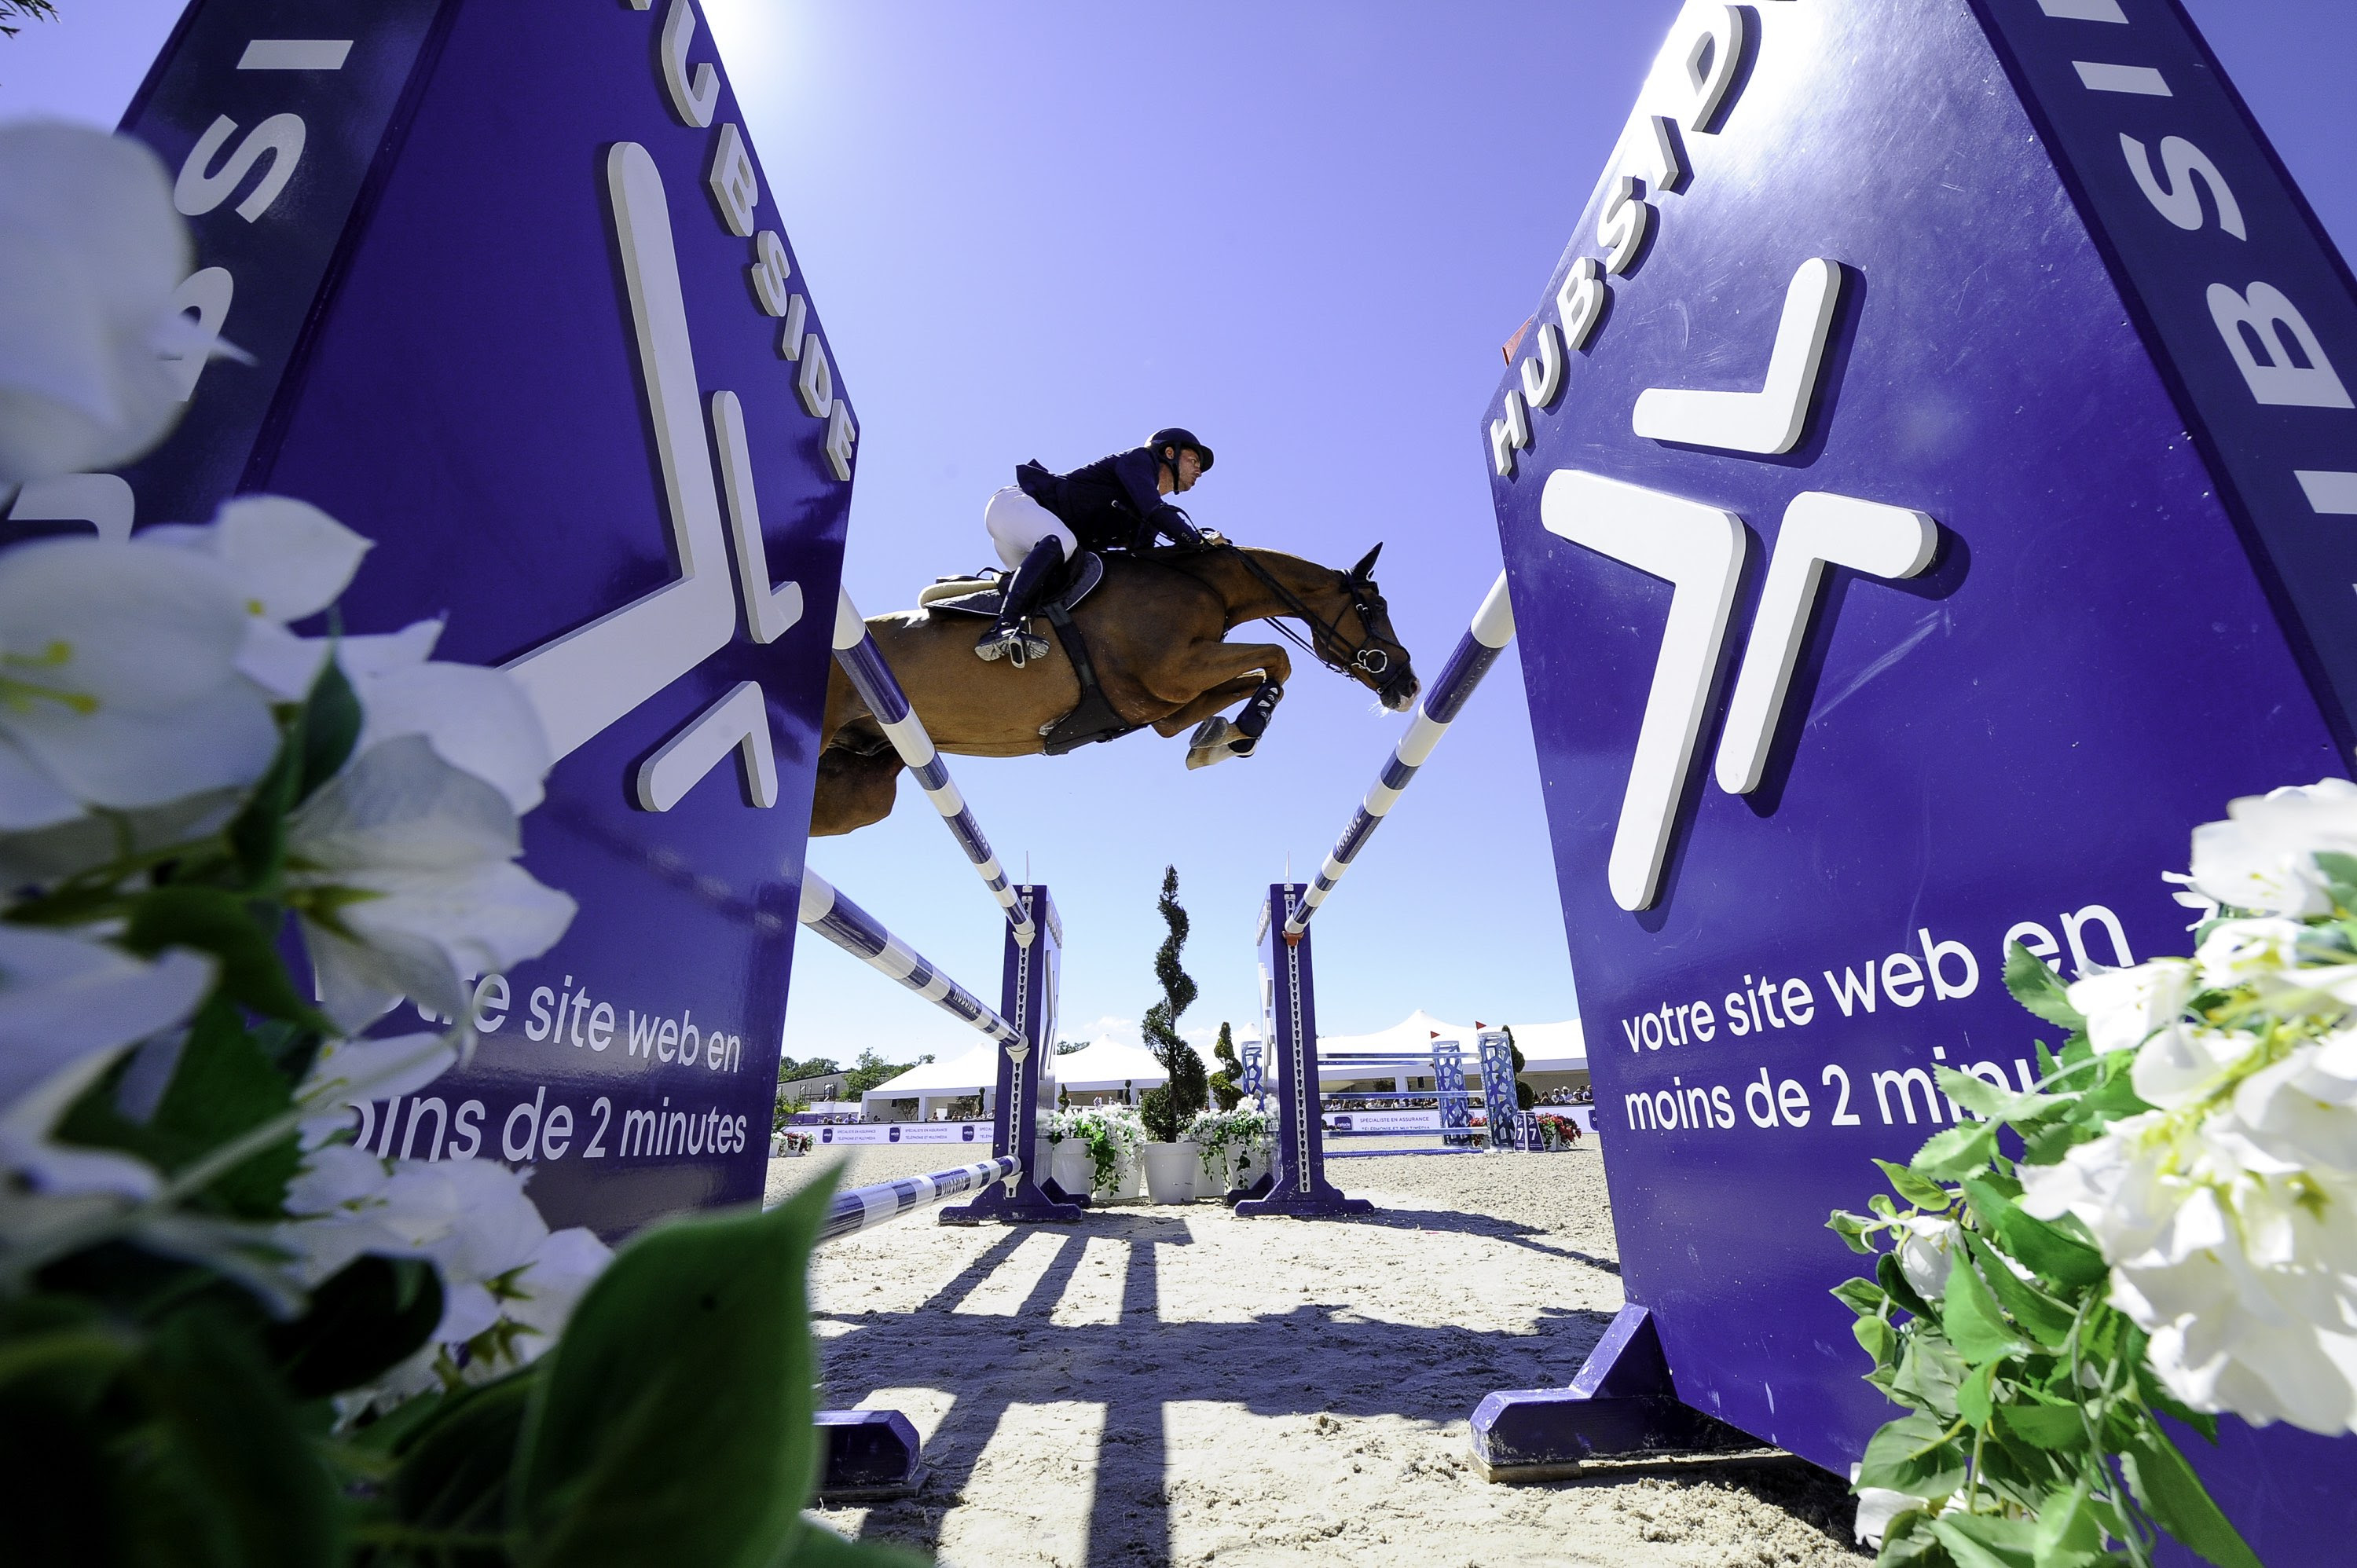 Five best riders in the world battle it out at Hubside Jumping this week